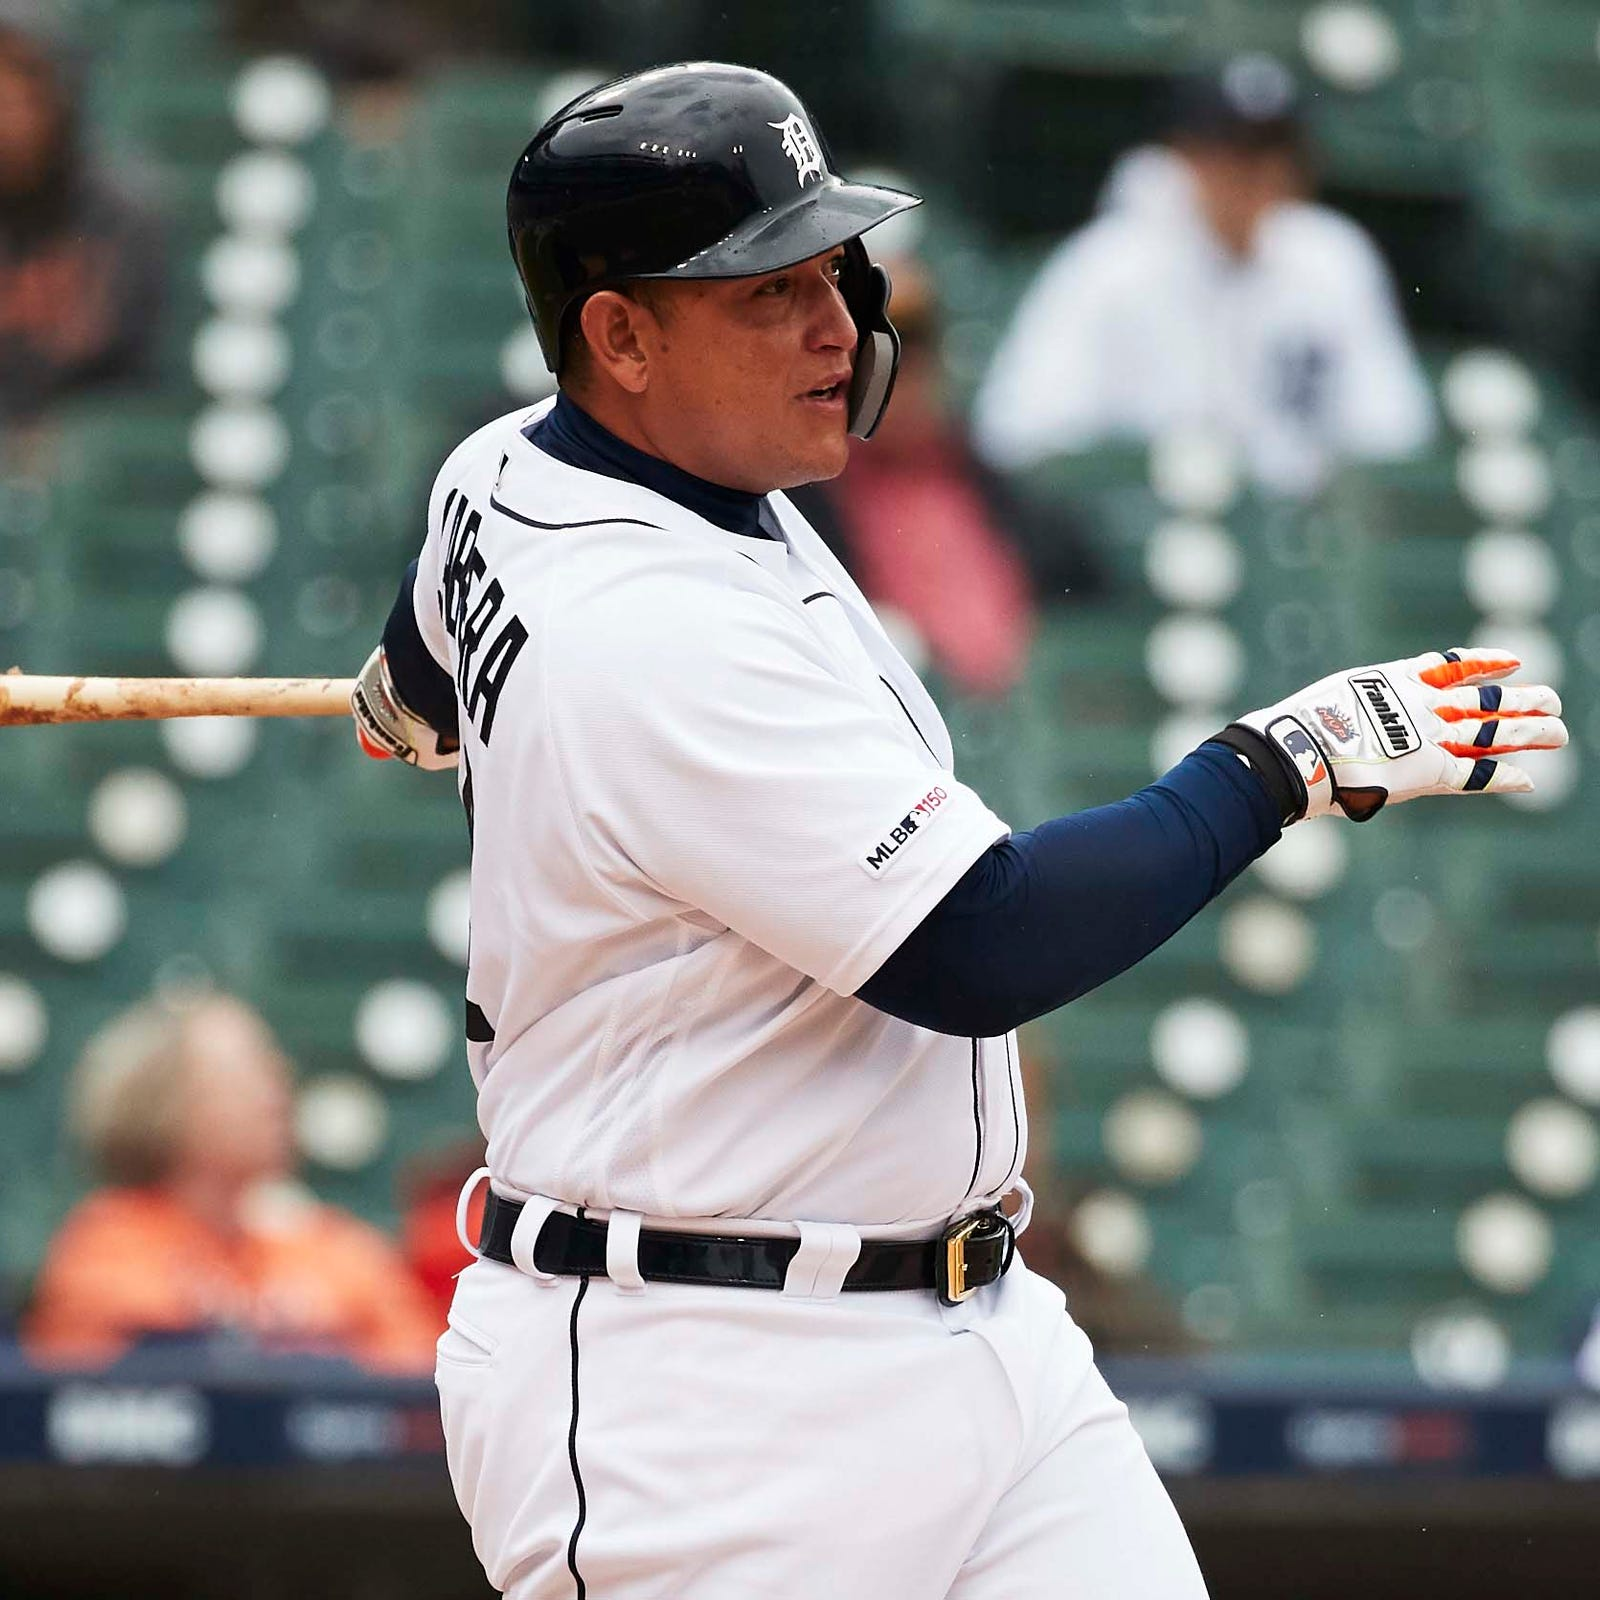 Detroit Tigers observations: Sloppy defense stings, but Tigers set season high in runs